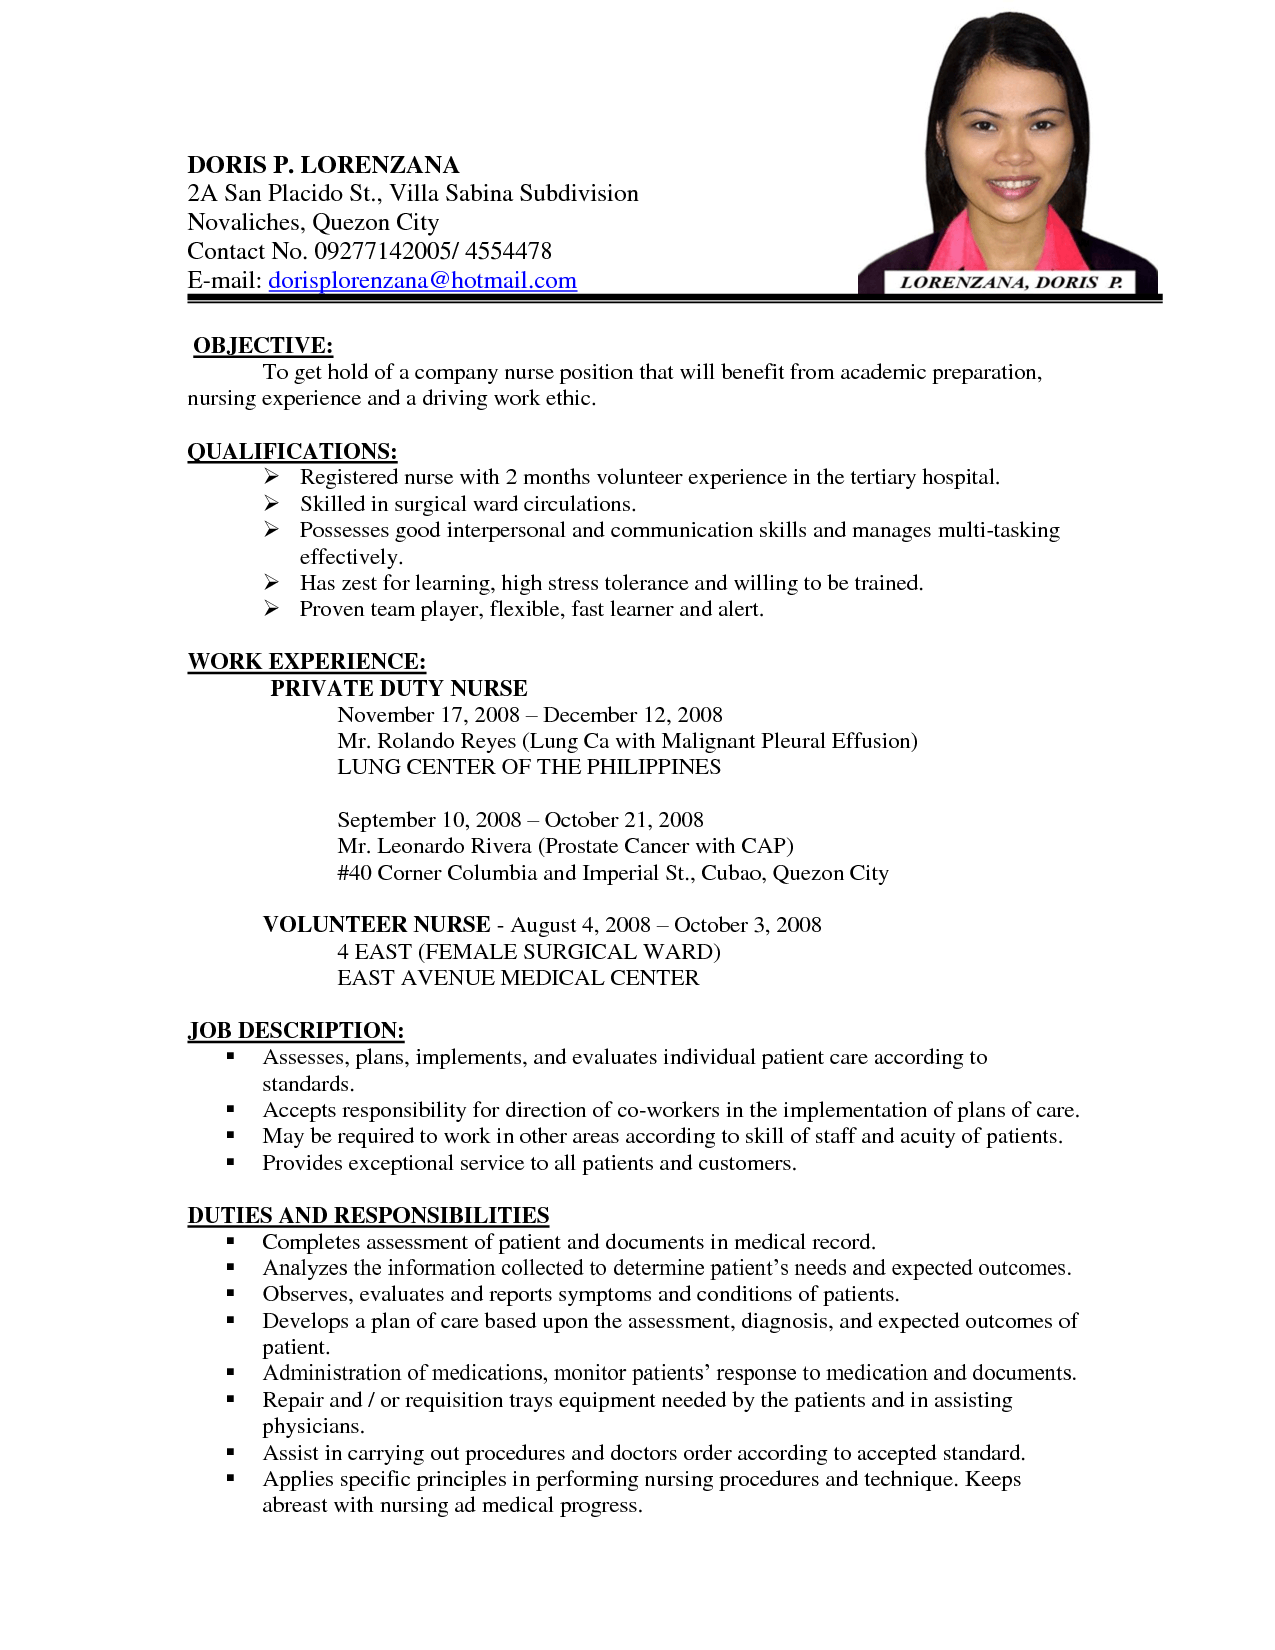 Image result for curriculum vitae format for a nurse Job